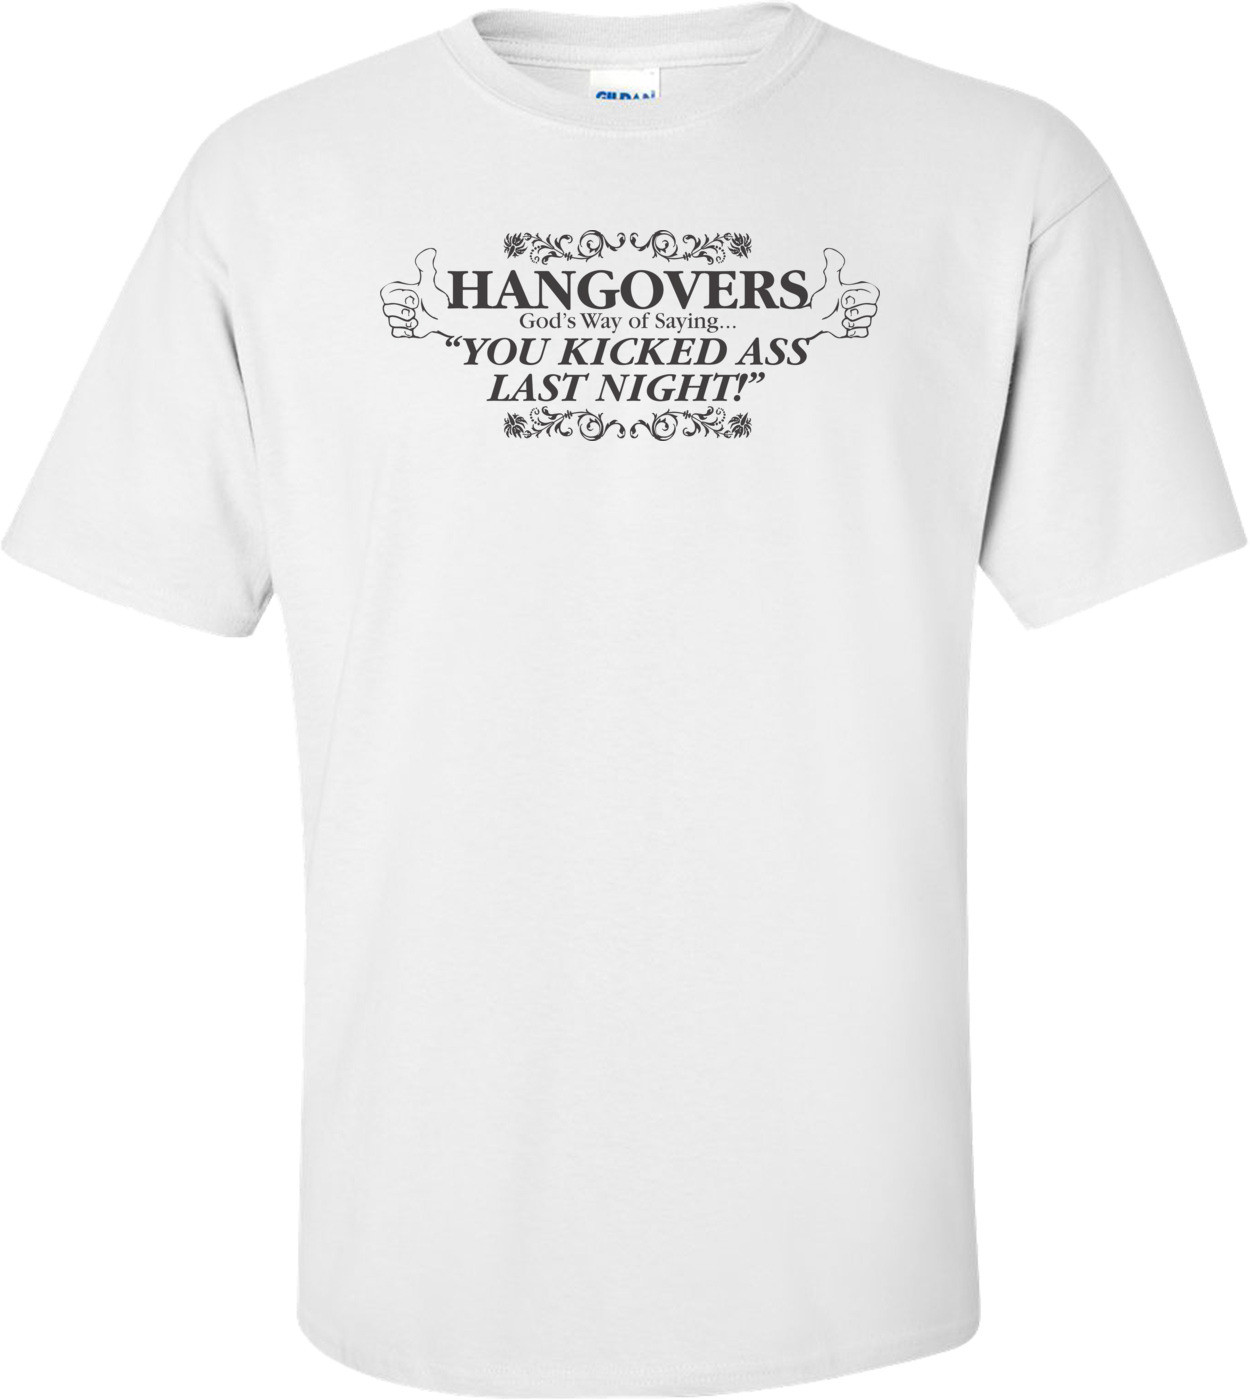 Hangovers God's Way Of Saying That You Kicked Ass Last Night T-shirt